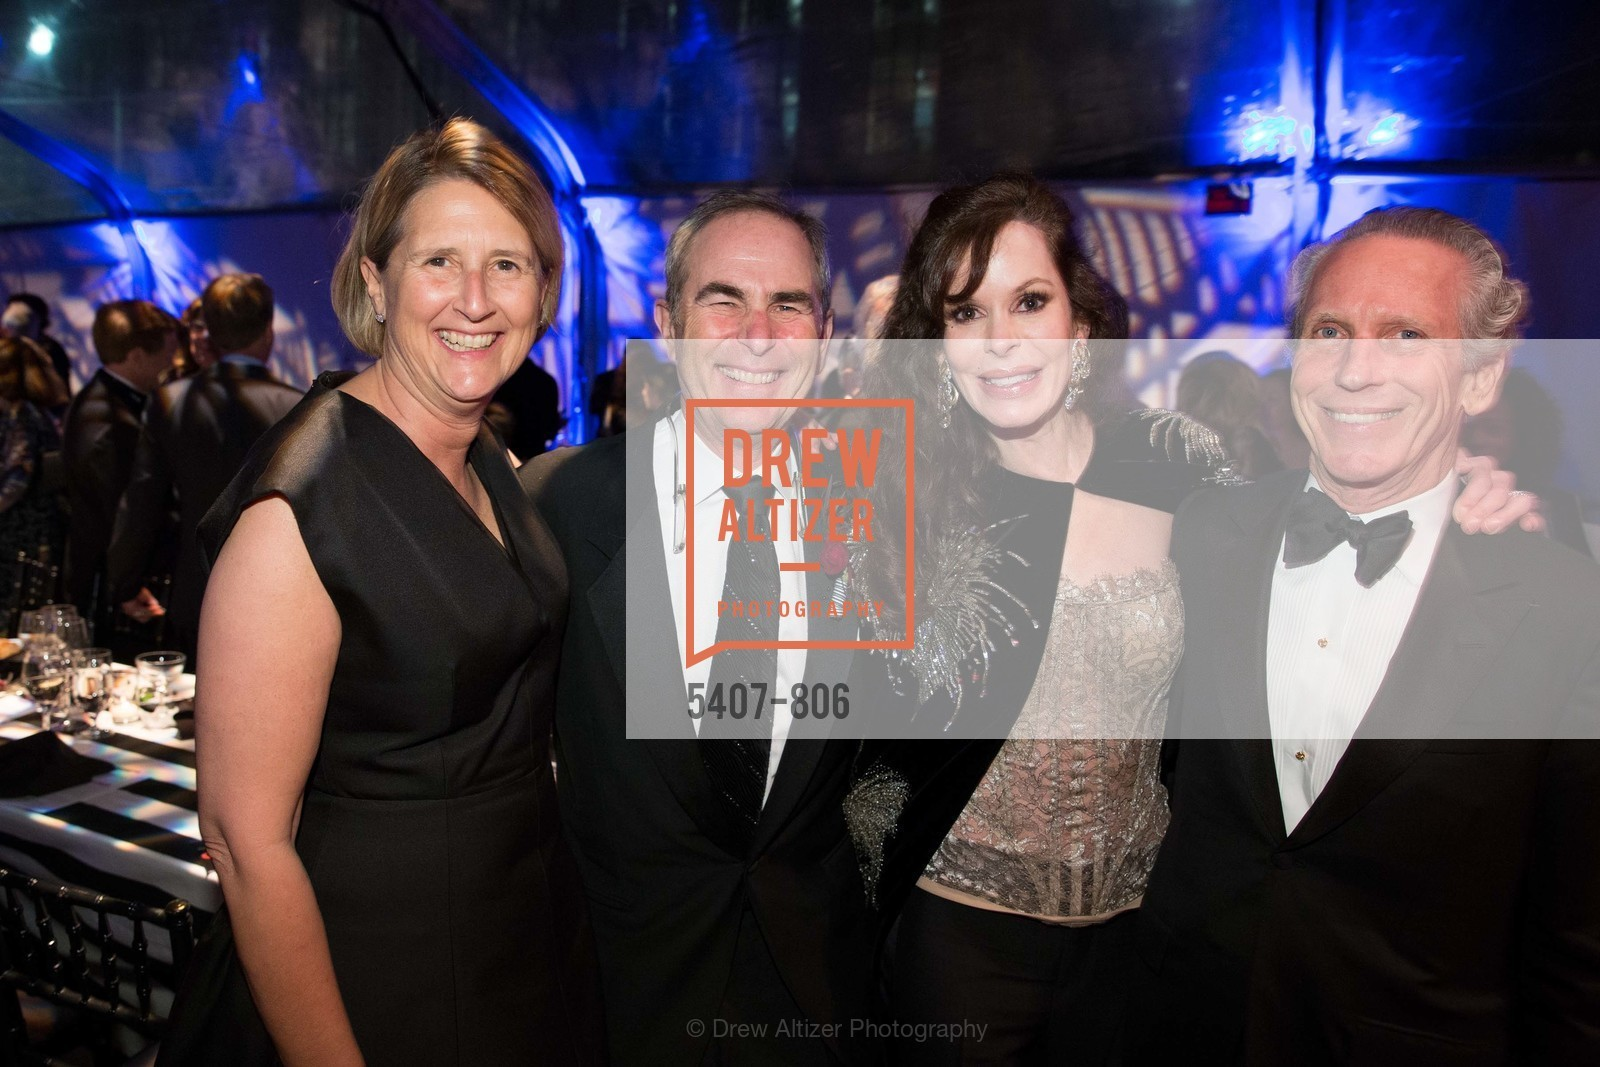 Prisca Geeslin, Todd Werby, Stephanie Marver, Jim Marver, A.C.T. Gala Come Get Stranded, US, April 25th, 2015,Drew Altizer, Drew Altizer Photography, full-service agency, private events, San Francisco photographer, photographer california